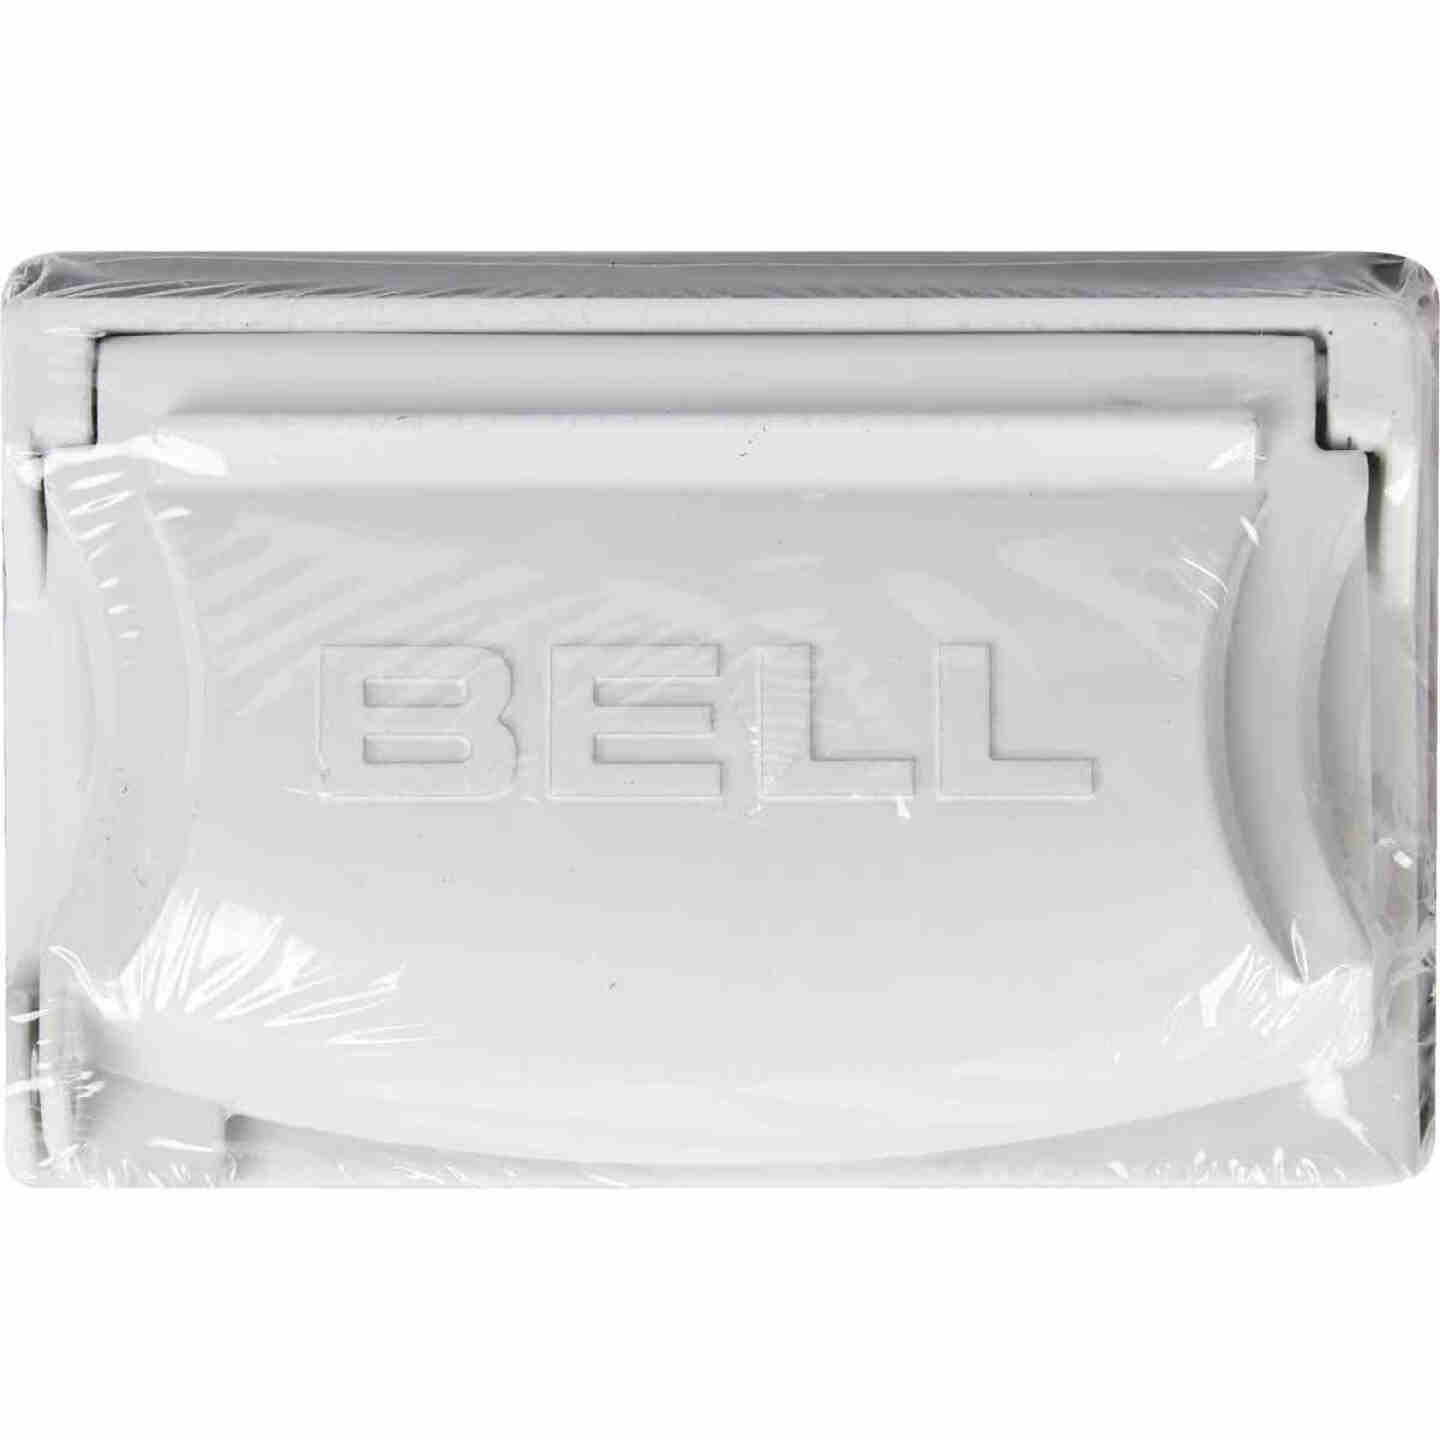 Bell Single Gang Multi-Configuration Die-Cast Metal White Outdoor Outlet Cover Image 2